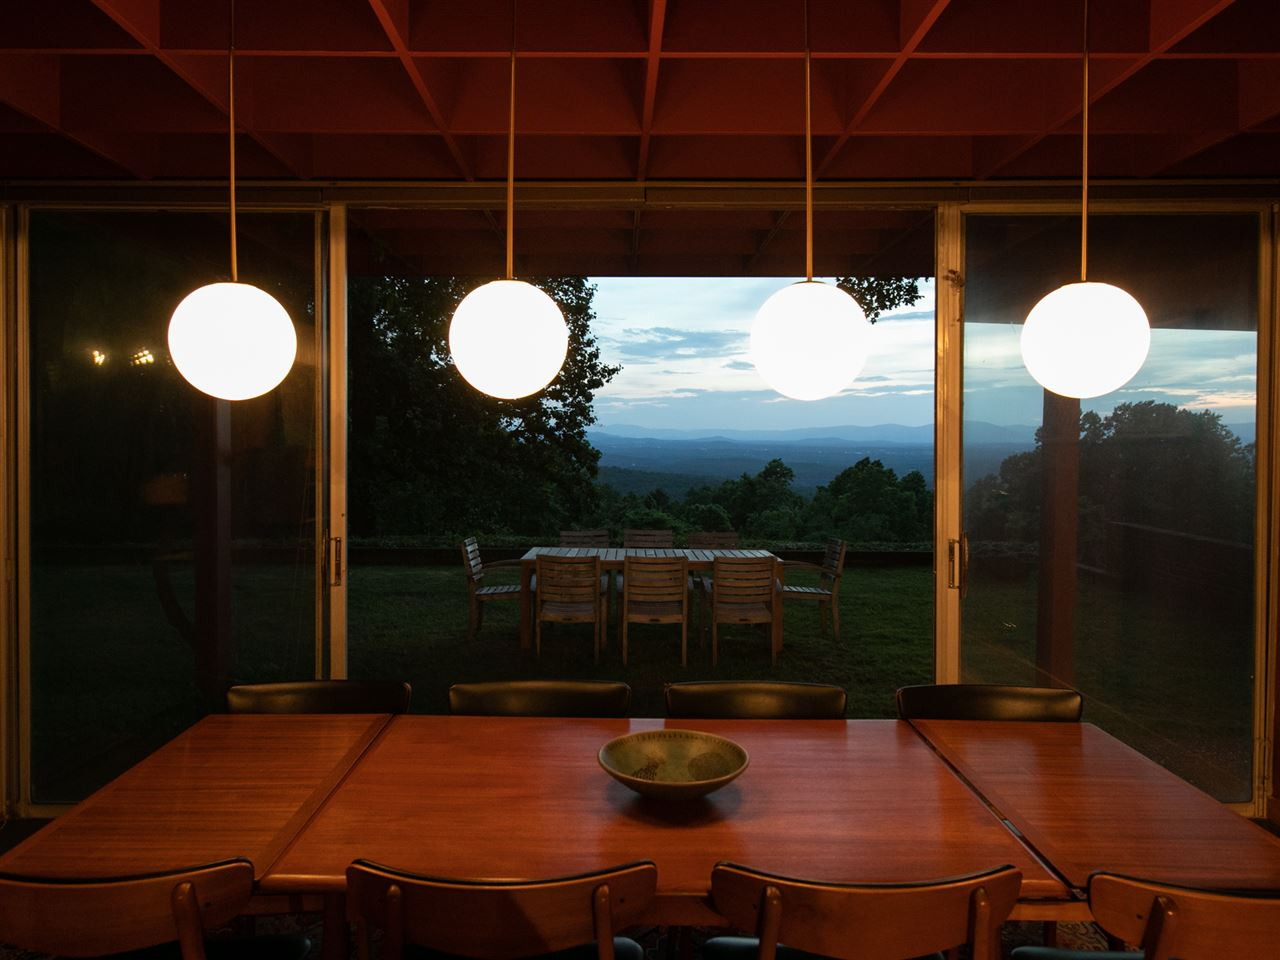 dining room with evening view of mountains